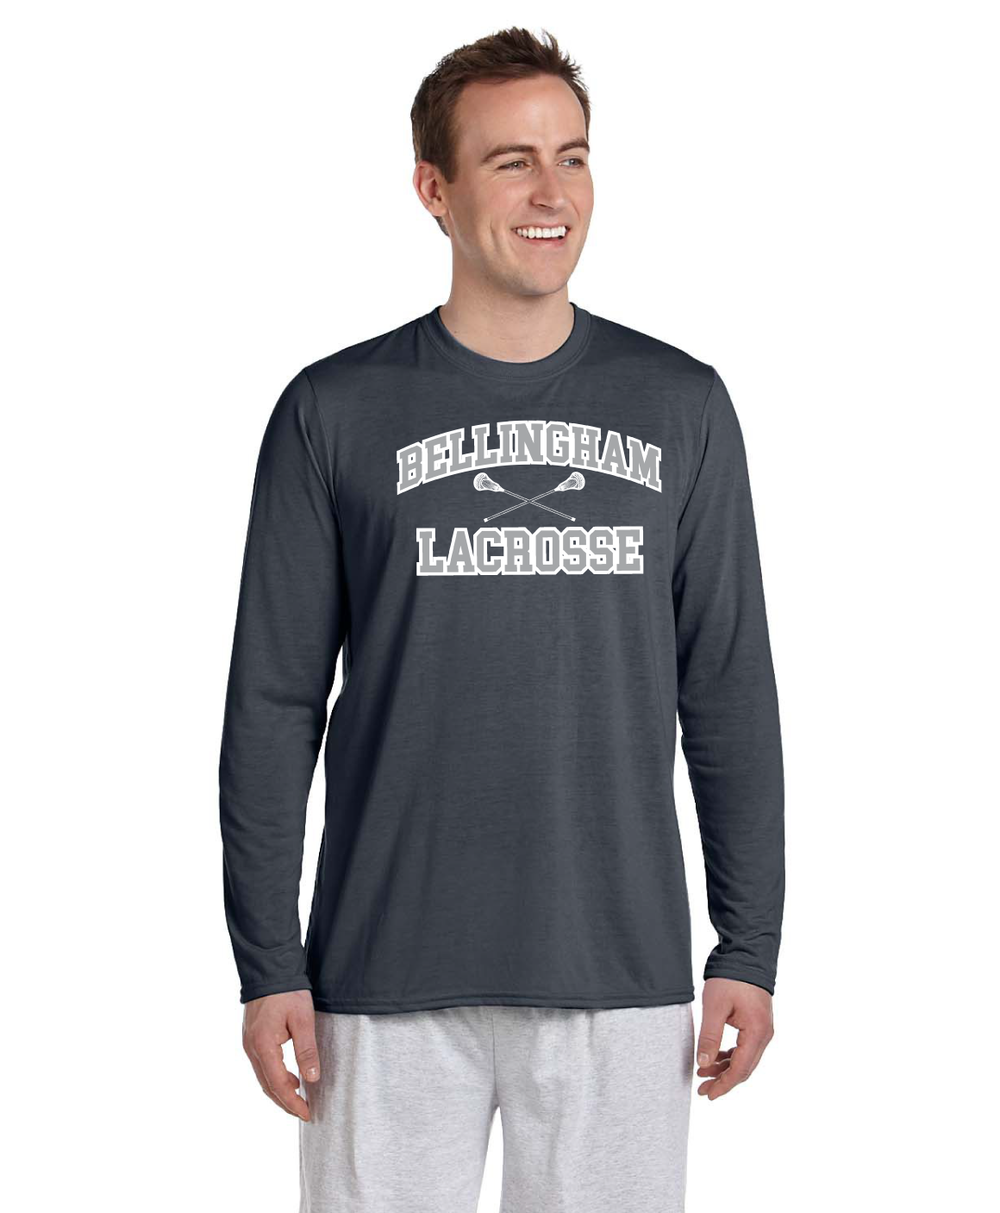 Bellingham Lacrosse Performance Tee (Long-sleeve) - From $20